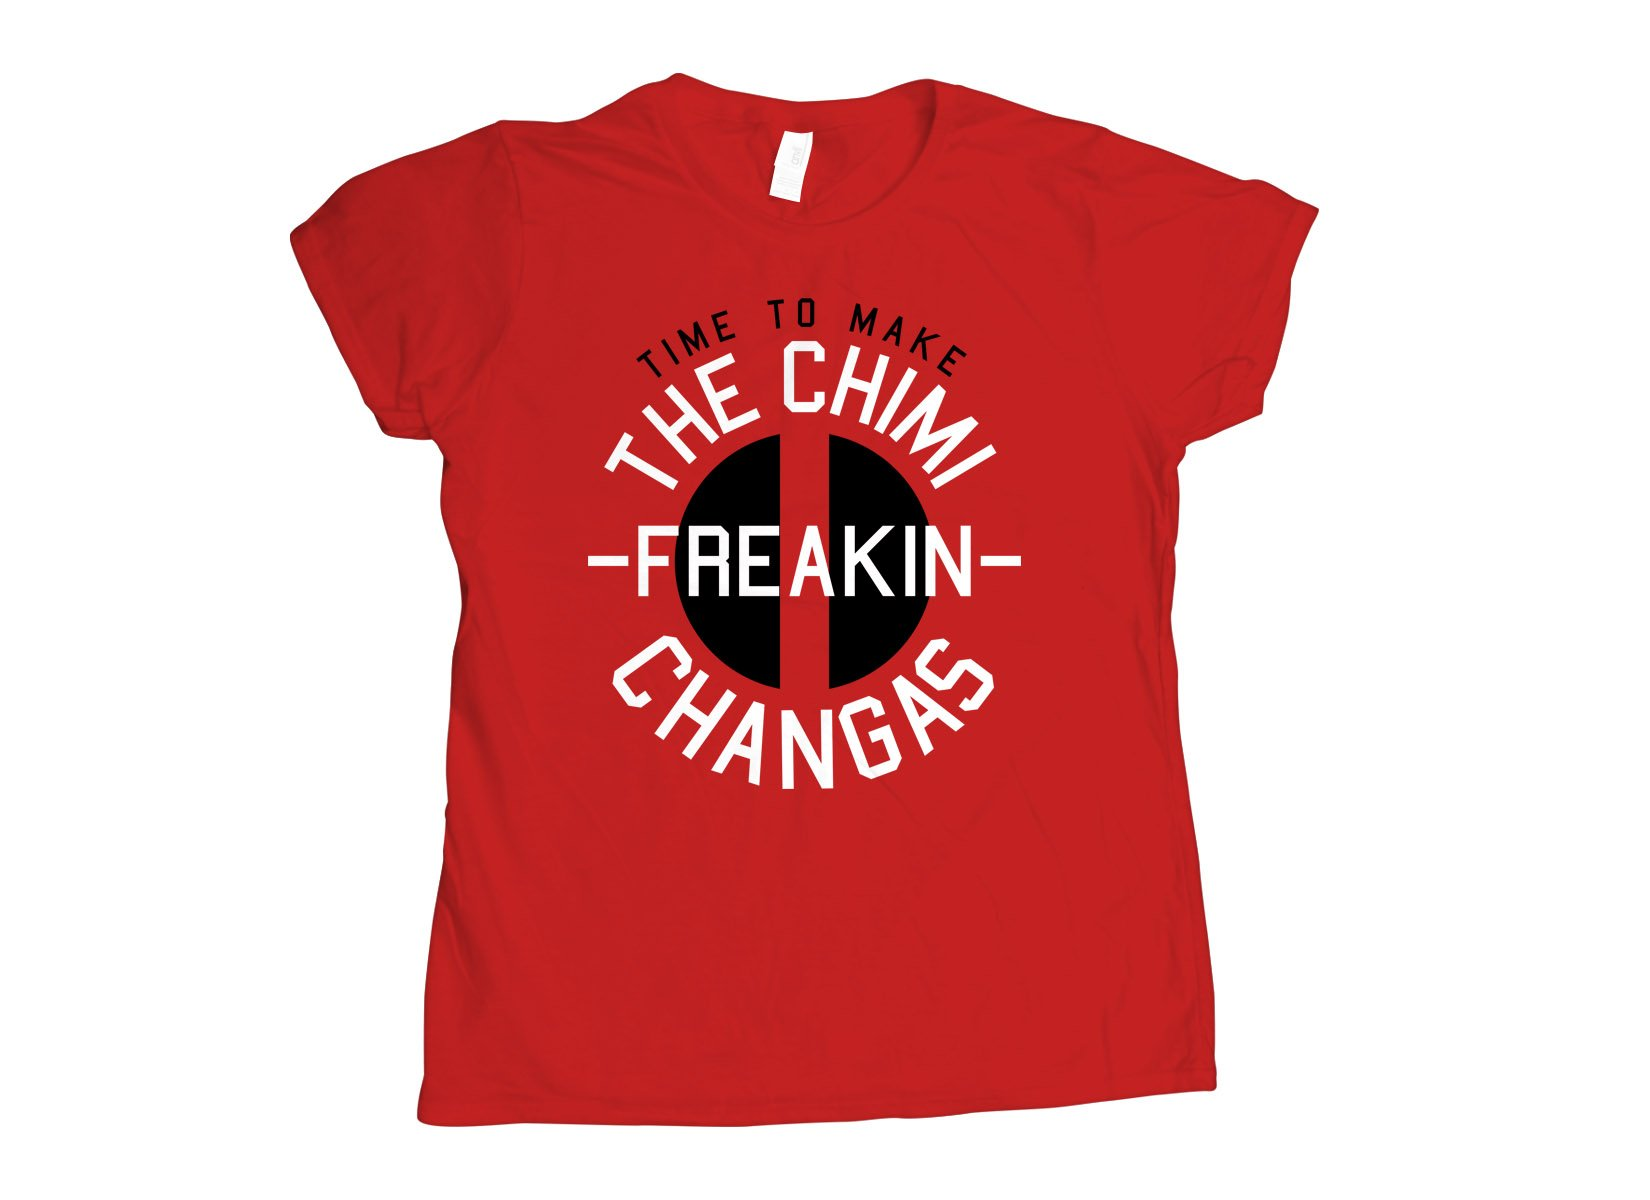 Chimi-freakin-changas on Womens T-Shirt